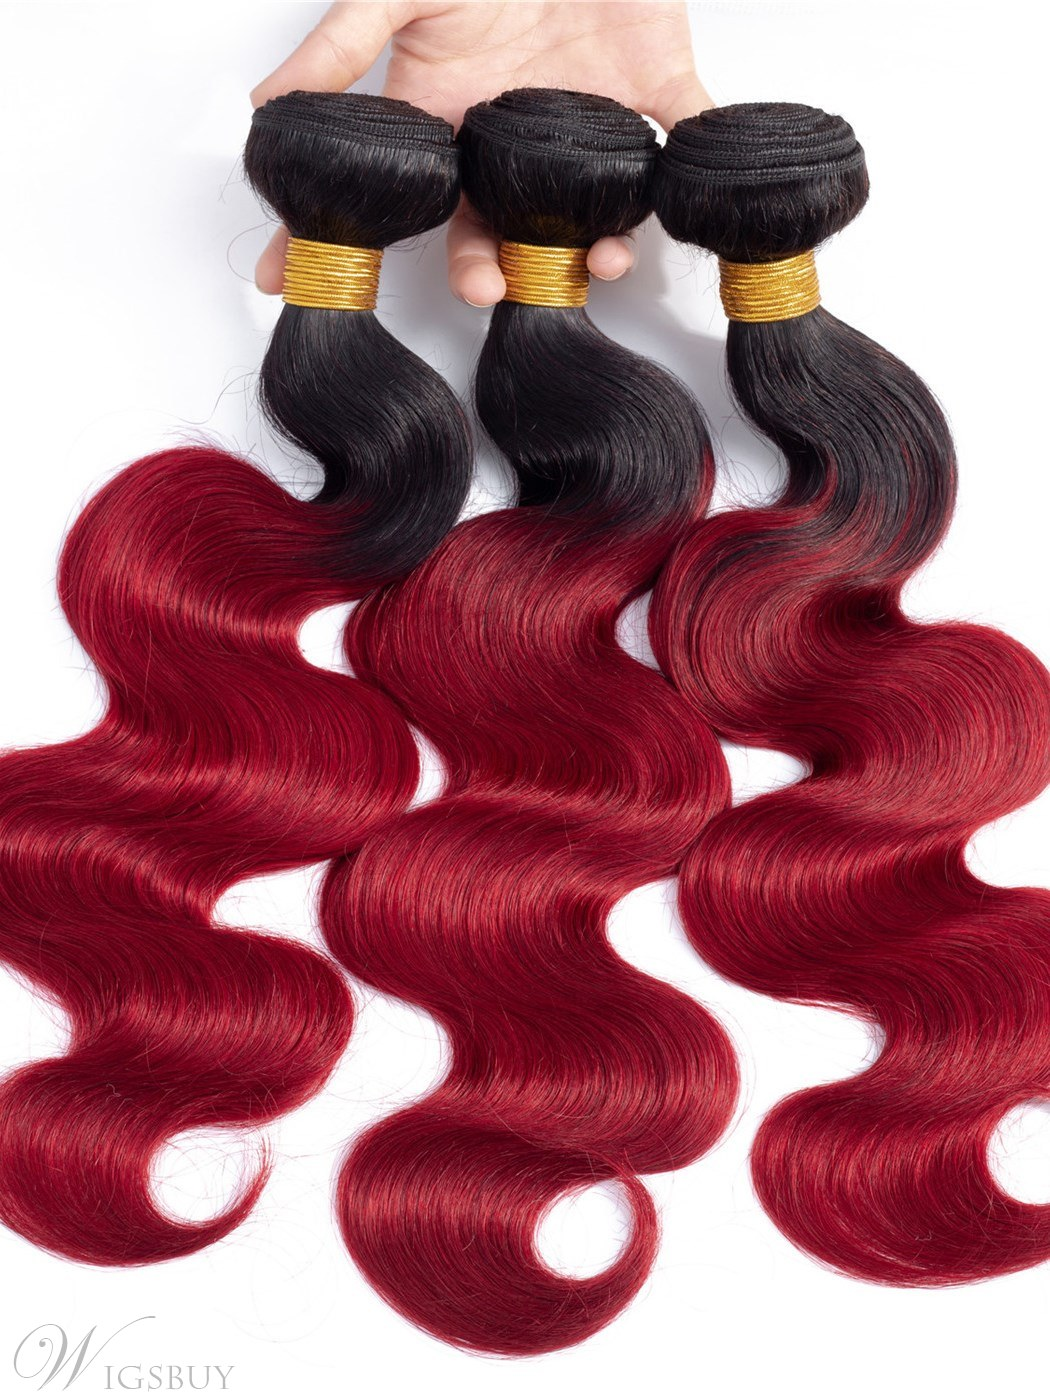 Wigsbuy Ombre Human Hair Extensions Body Wave 4 Pcs